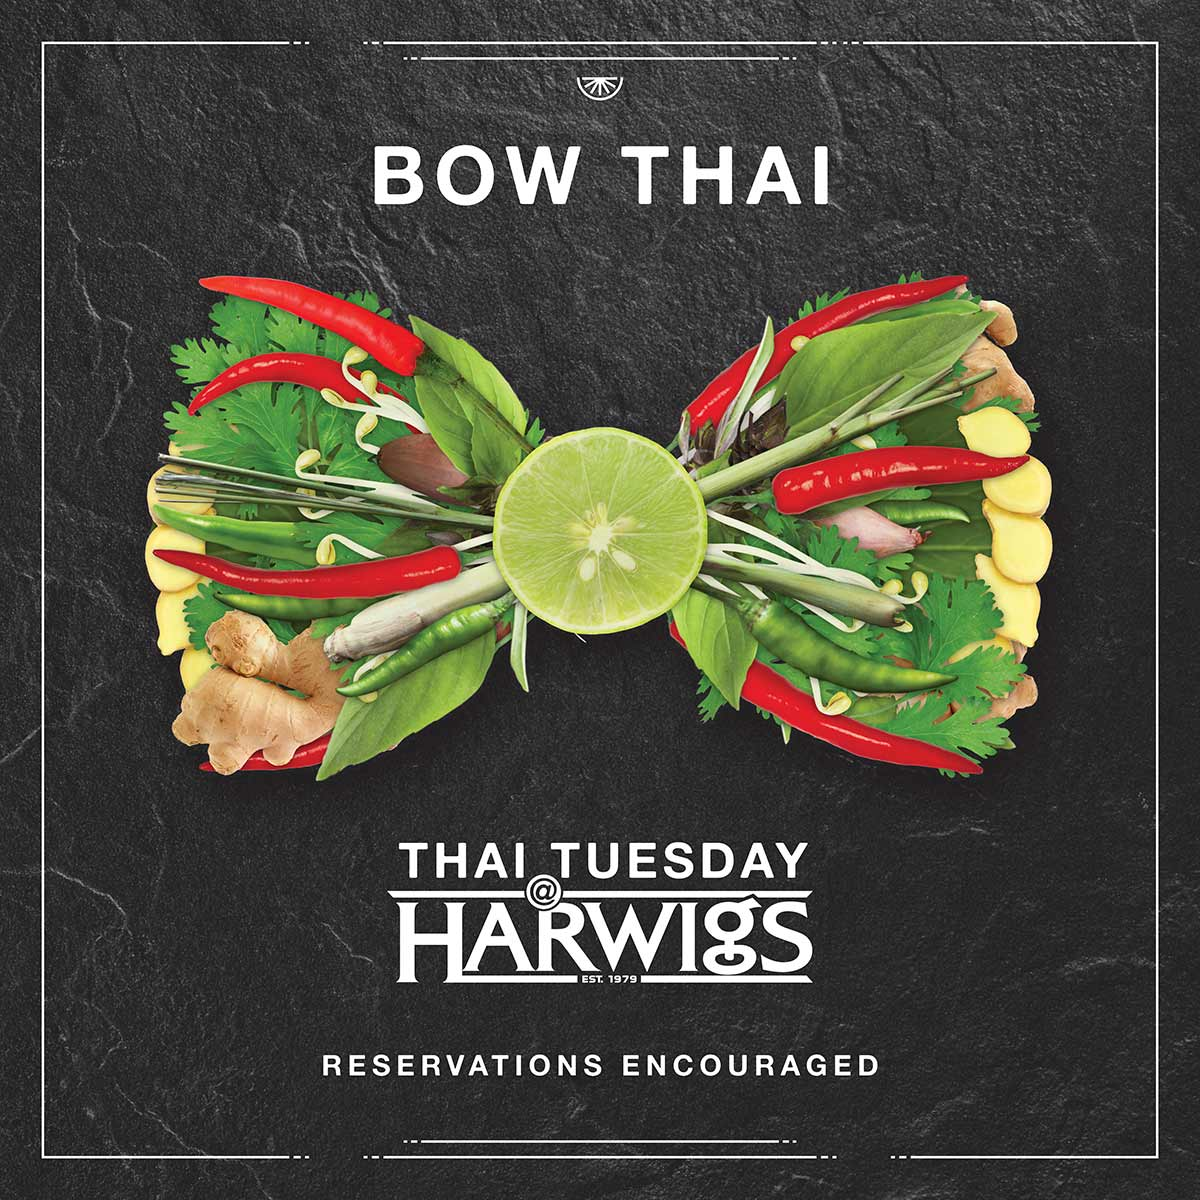 Harwigs Thai Tuesday - Bow Thai